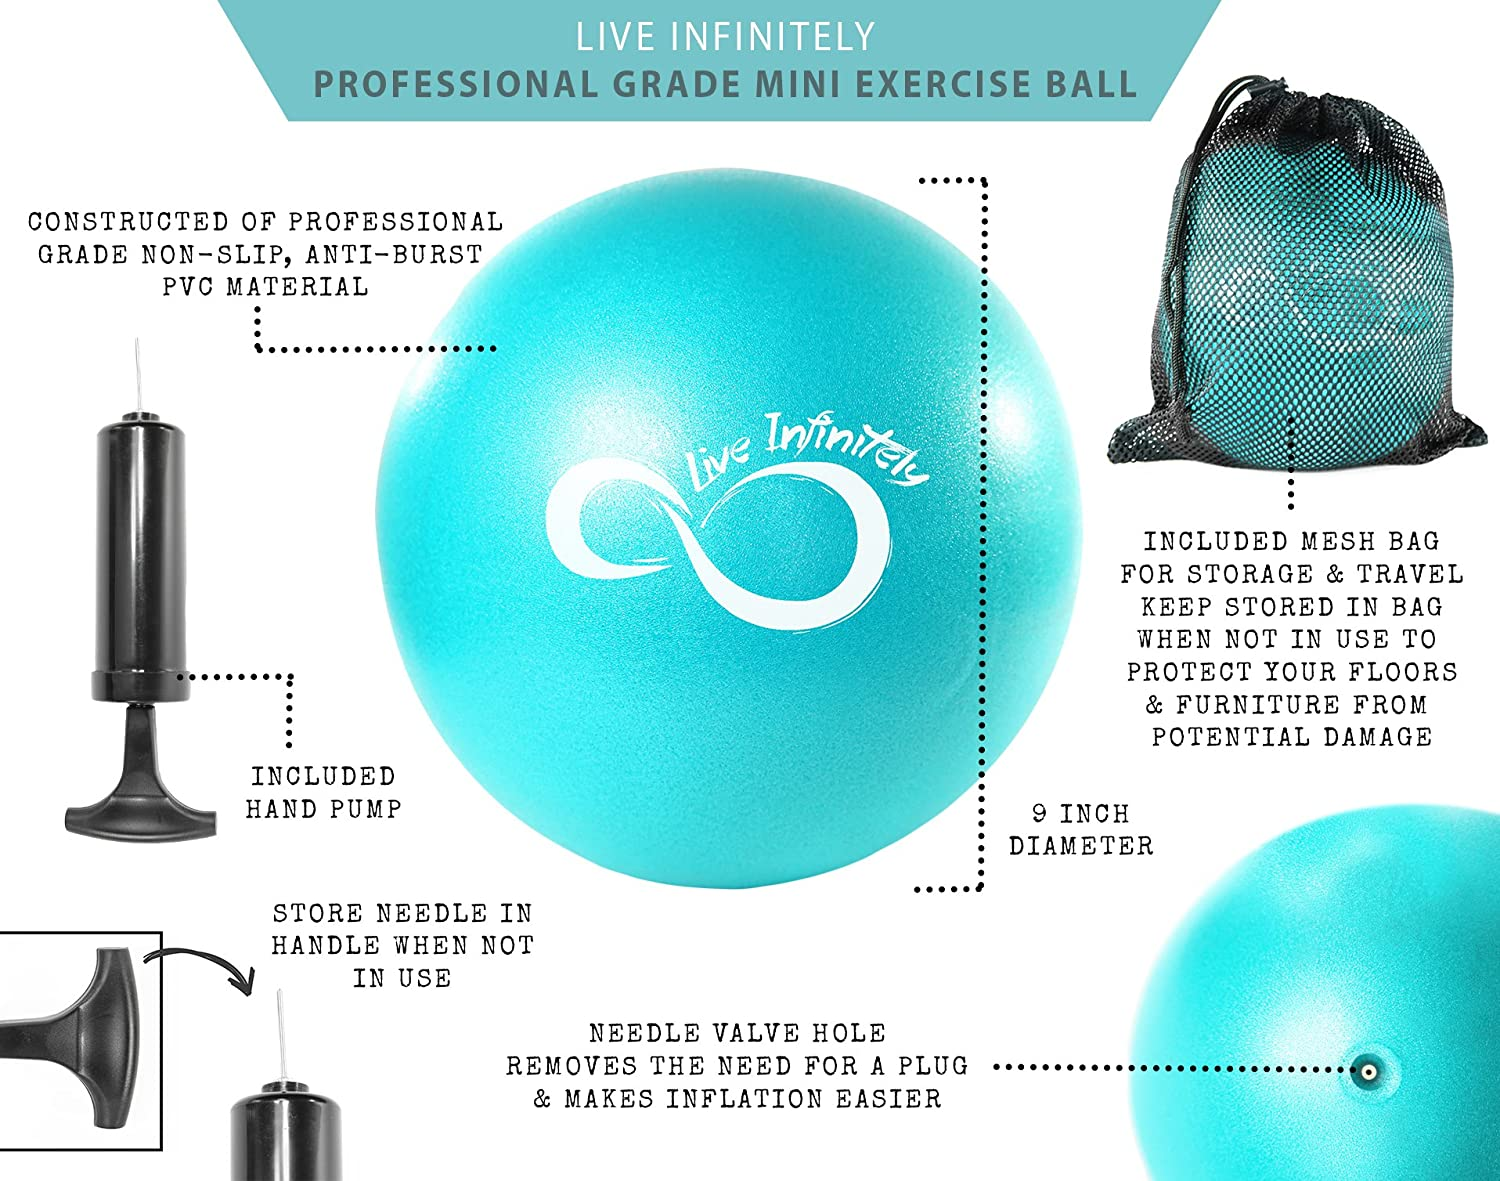 9 Inch Barre Pilates Ball Hand Pump Anti Burst Mini Ball Digital Workout eBook Included For Yoga, Exercise, Balance Stability Training Comes With Mesh Carrying Bag Self-Sealing Valve